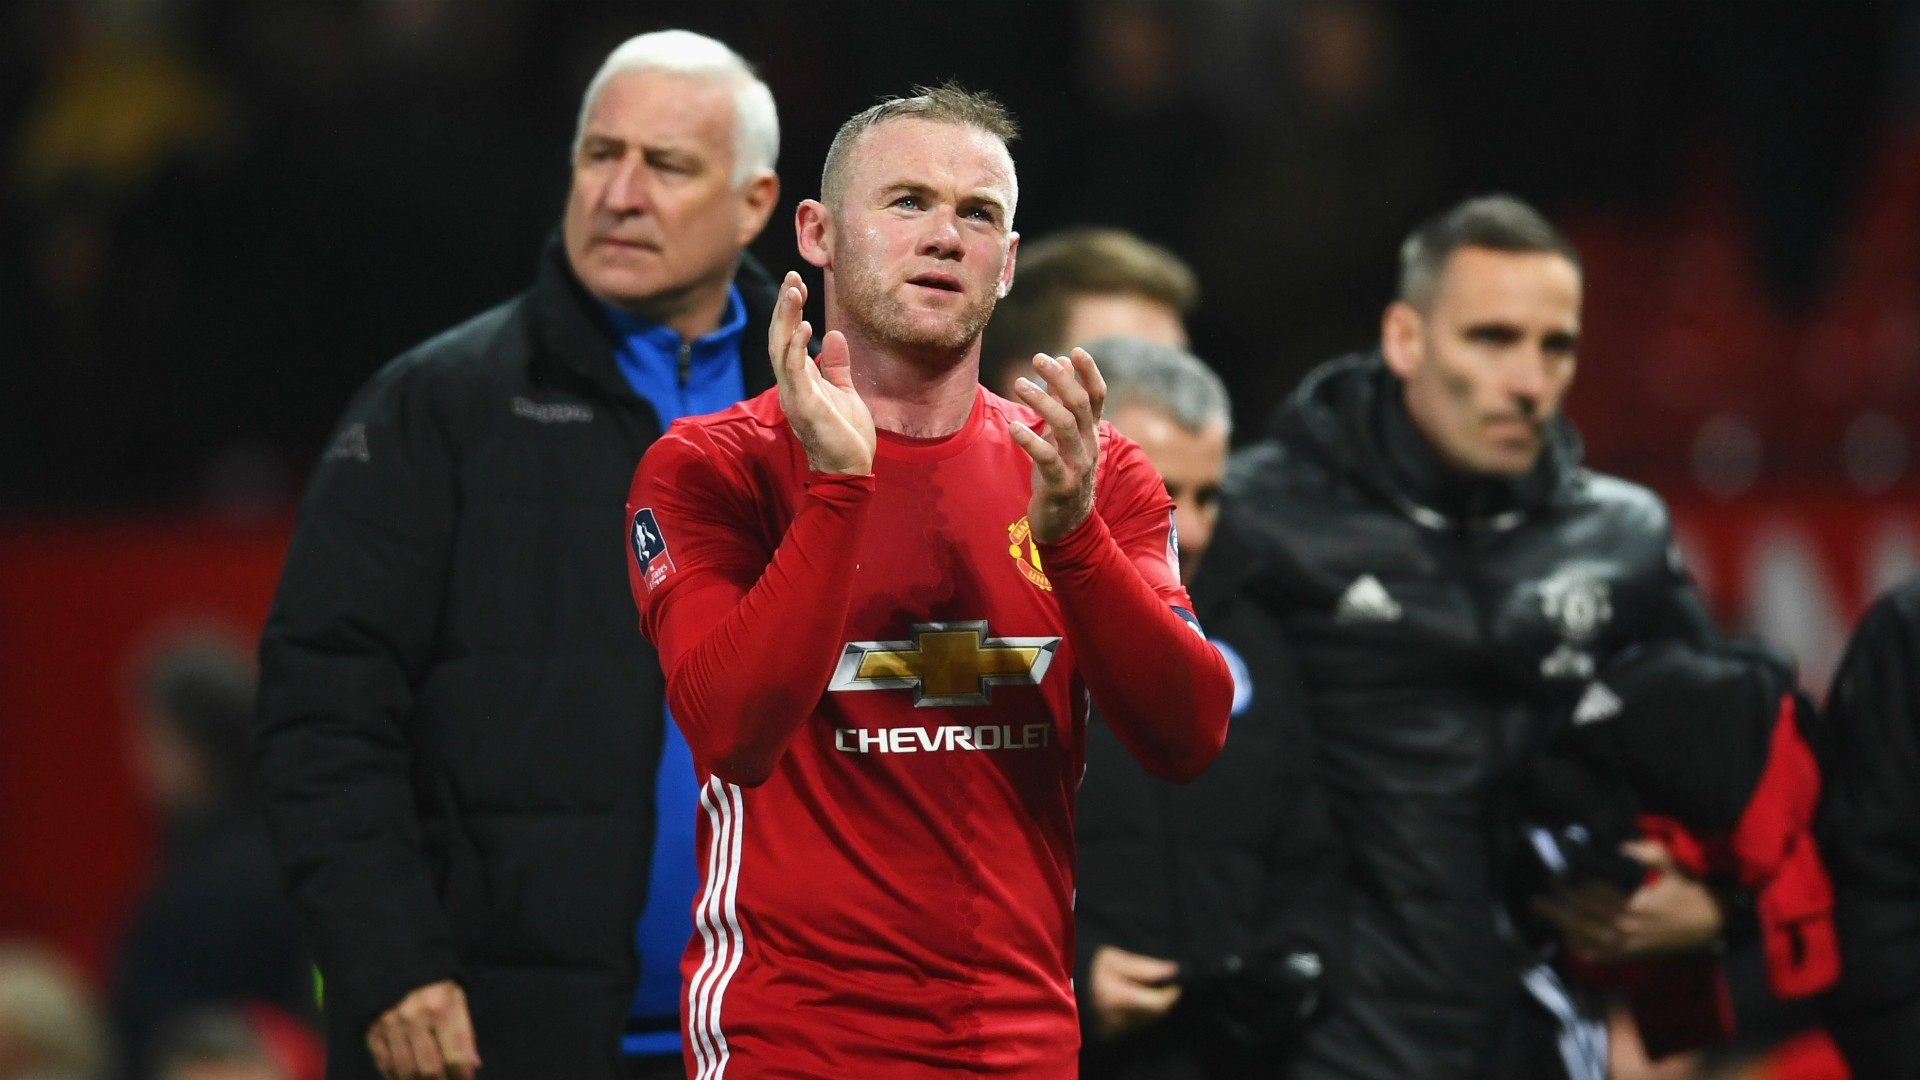 Rooney leaves Manchester United and practically every important figure associated with the club is talking up his influence on the team.